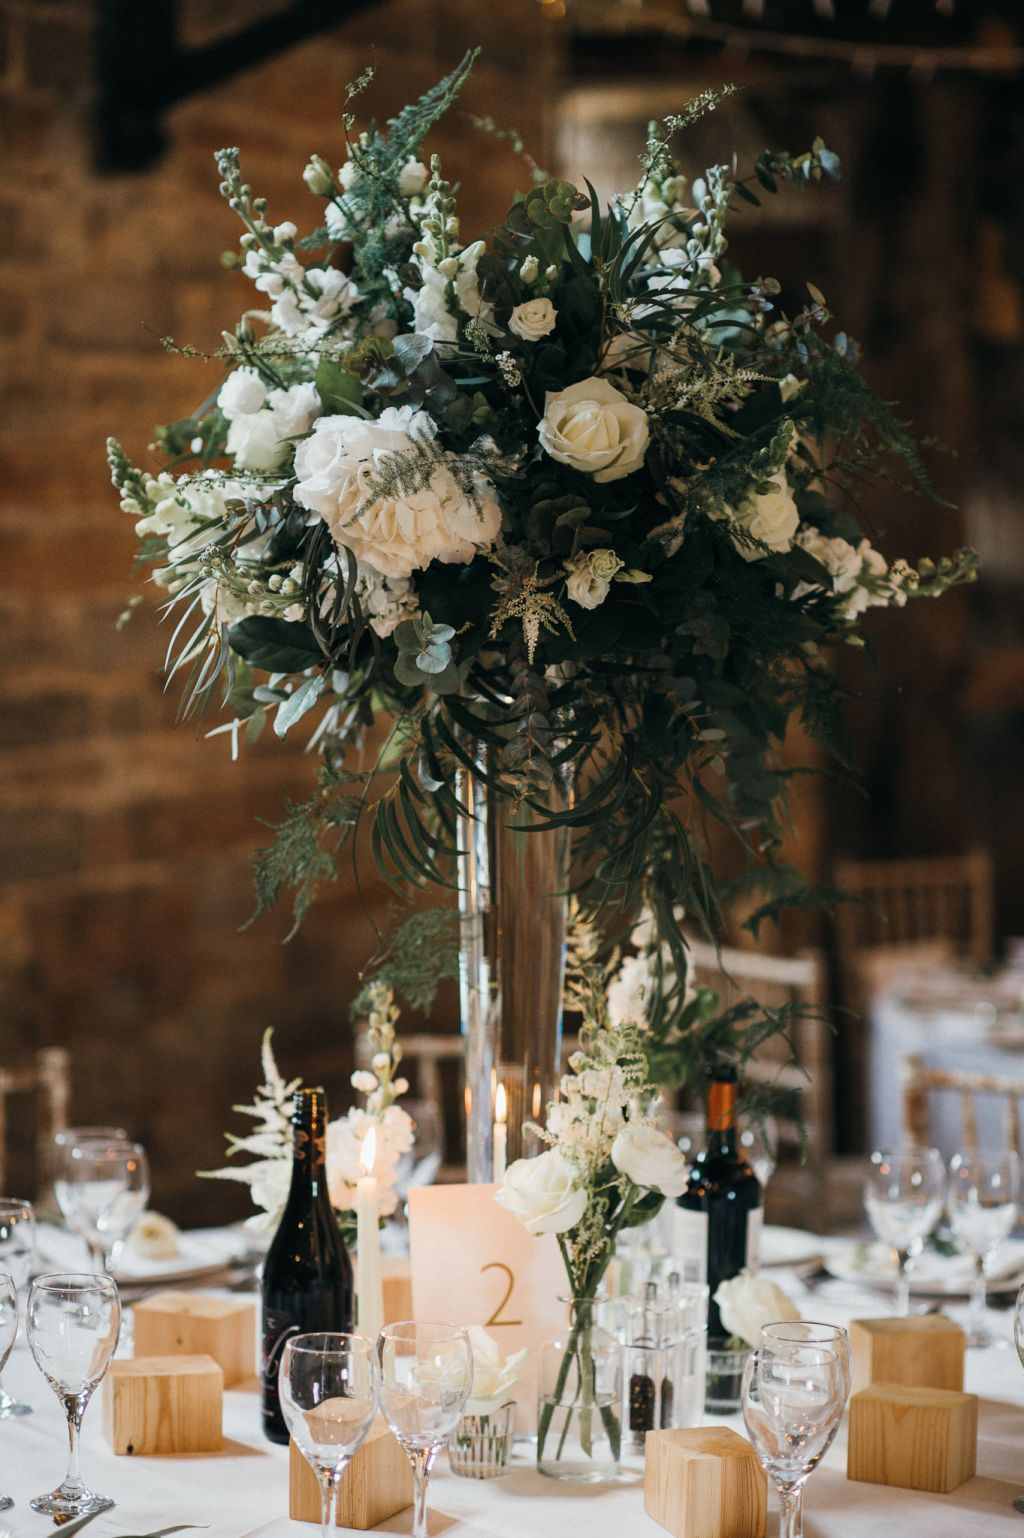 Tall Green and White Floral Centerpiece with Roses |Tall Green Centerpiece